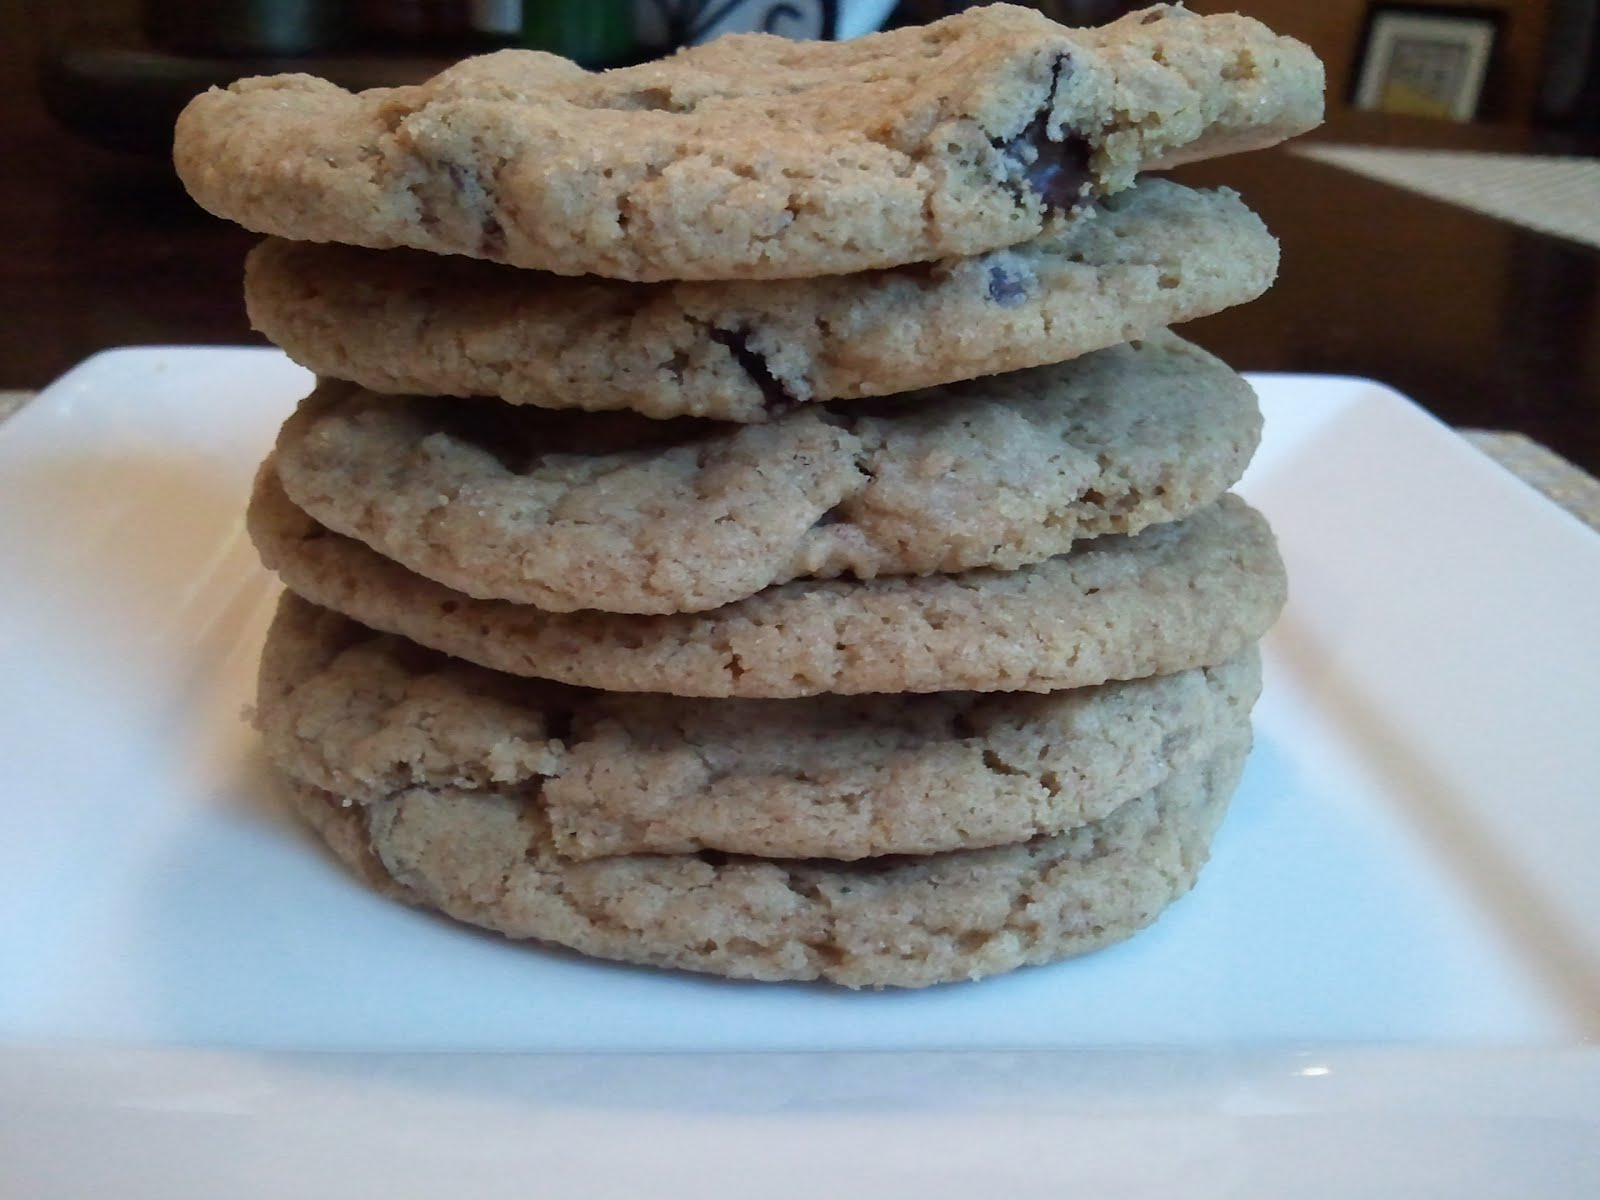 Calories Tollhouse Chocolate Chip Cookies